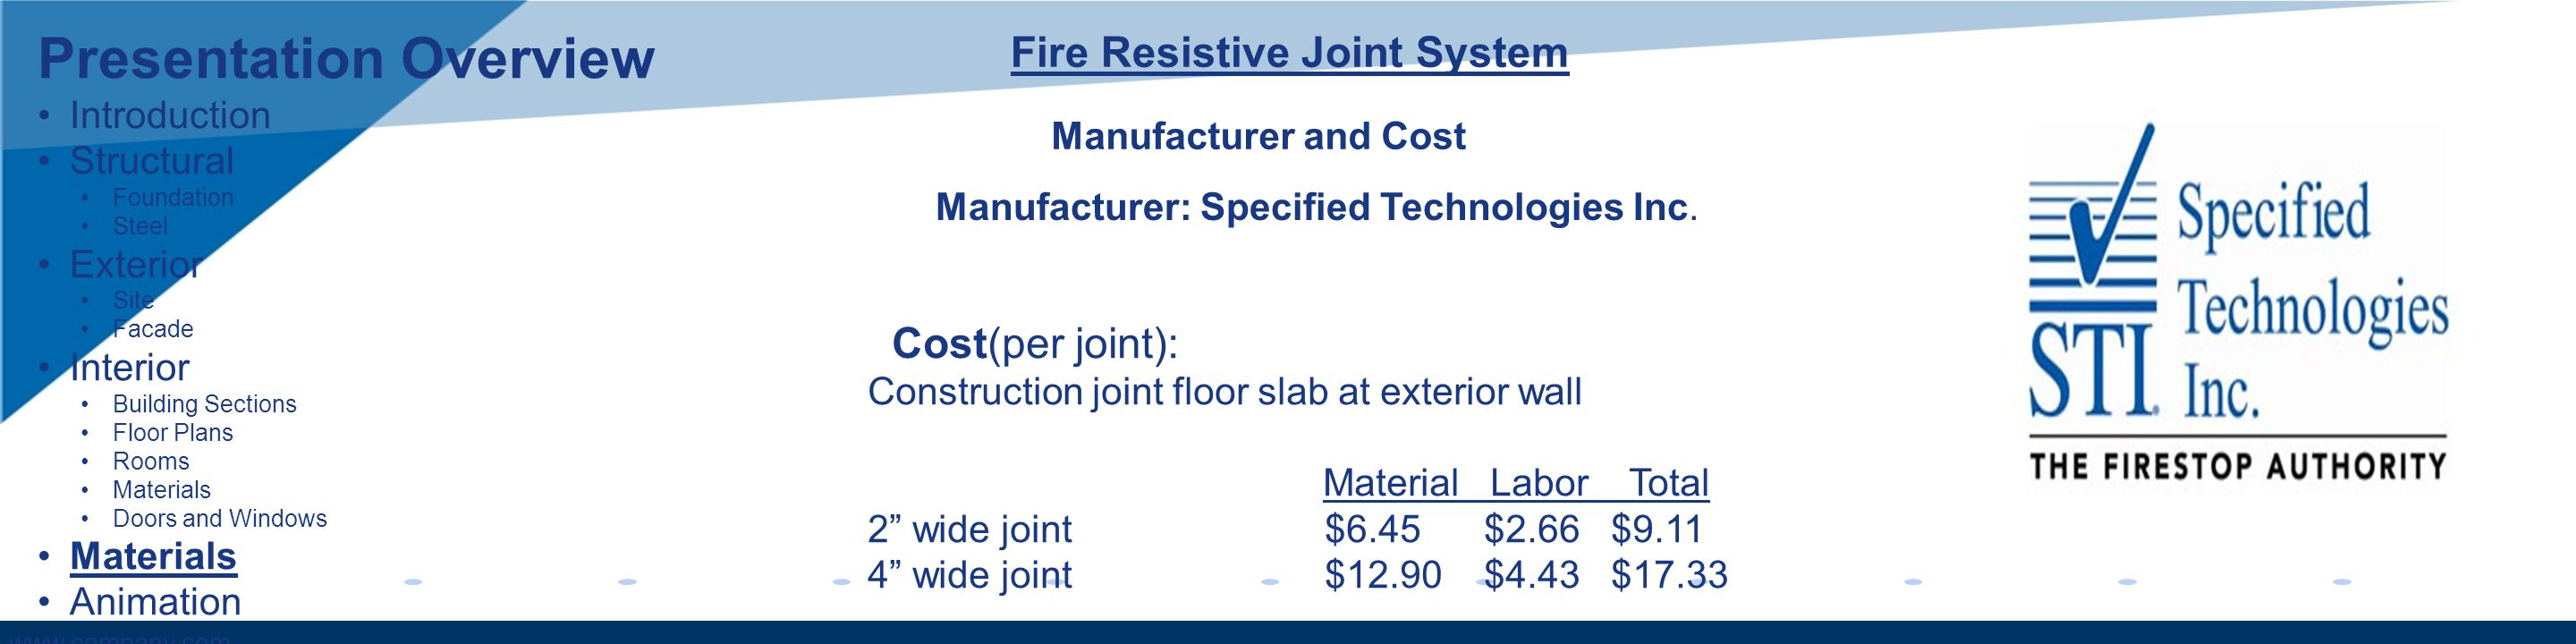 www.company.com Fire Resistive Joint System Manufacturer and Cost Cost(per joint): Construction joint floor slab at exterior wall Material Labor Total 2 wide joint $6.45 $2.66 $9.11 4 wide joint $12.90 $4.43 $17.33 Manufacturer: Specified Technologies Inc.